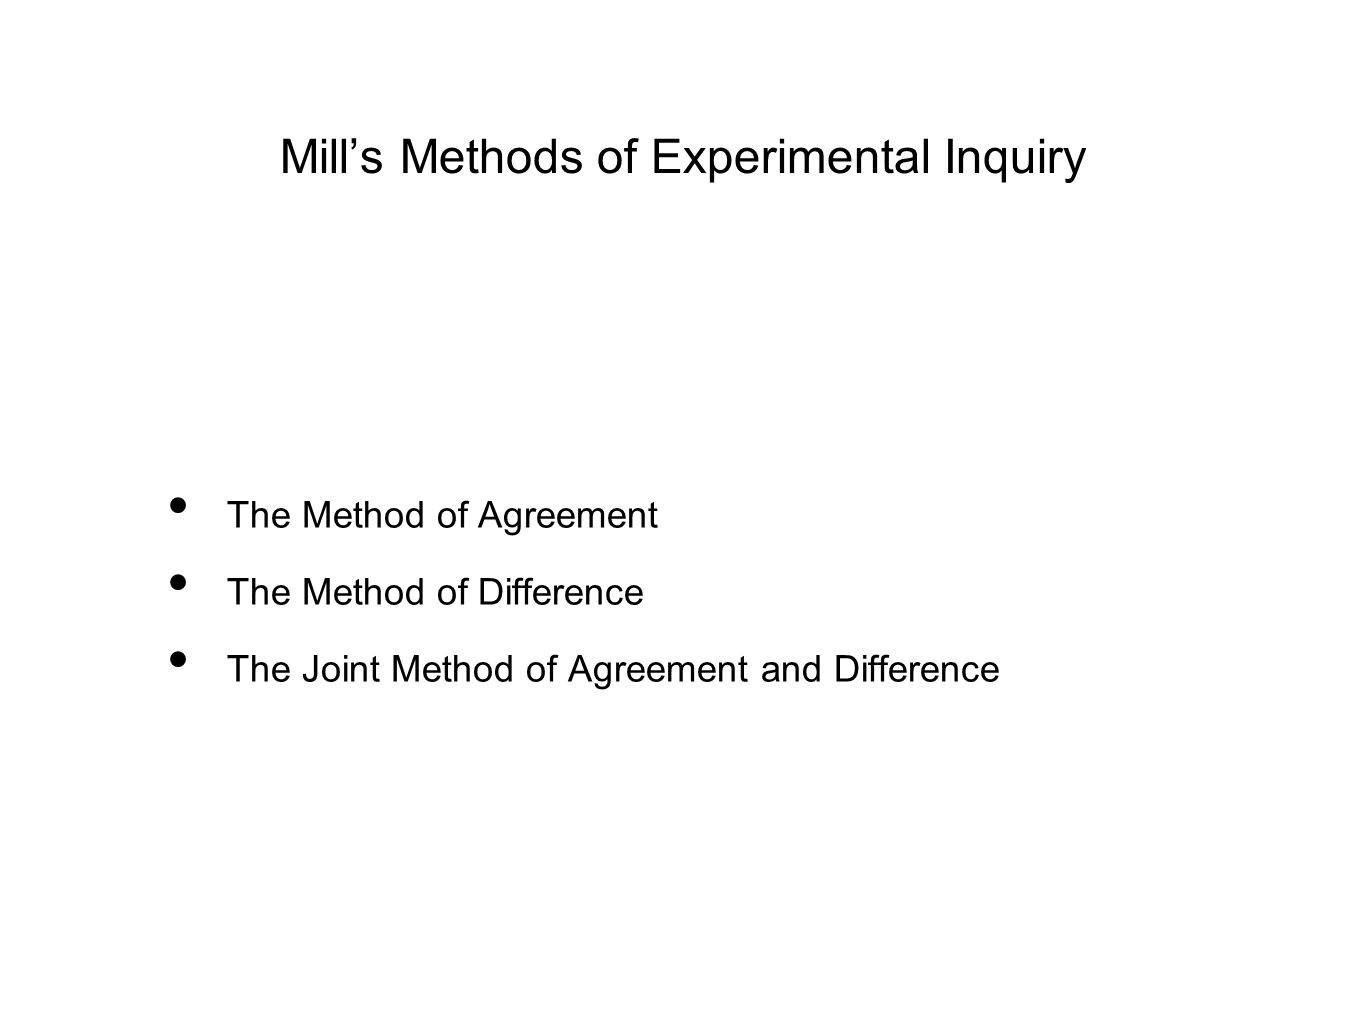 Mill's Methods of Experimental Inquiry The Method of Agreement The Method of Difference The Joint Method of Agreement and Difference